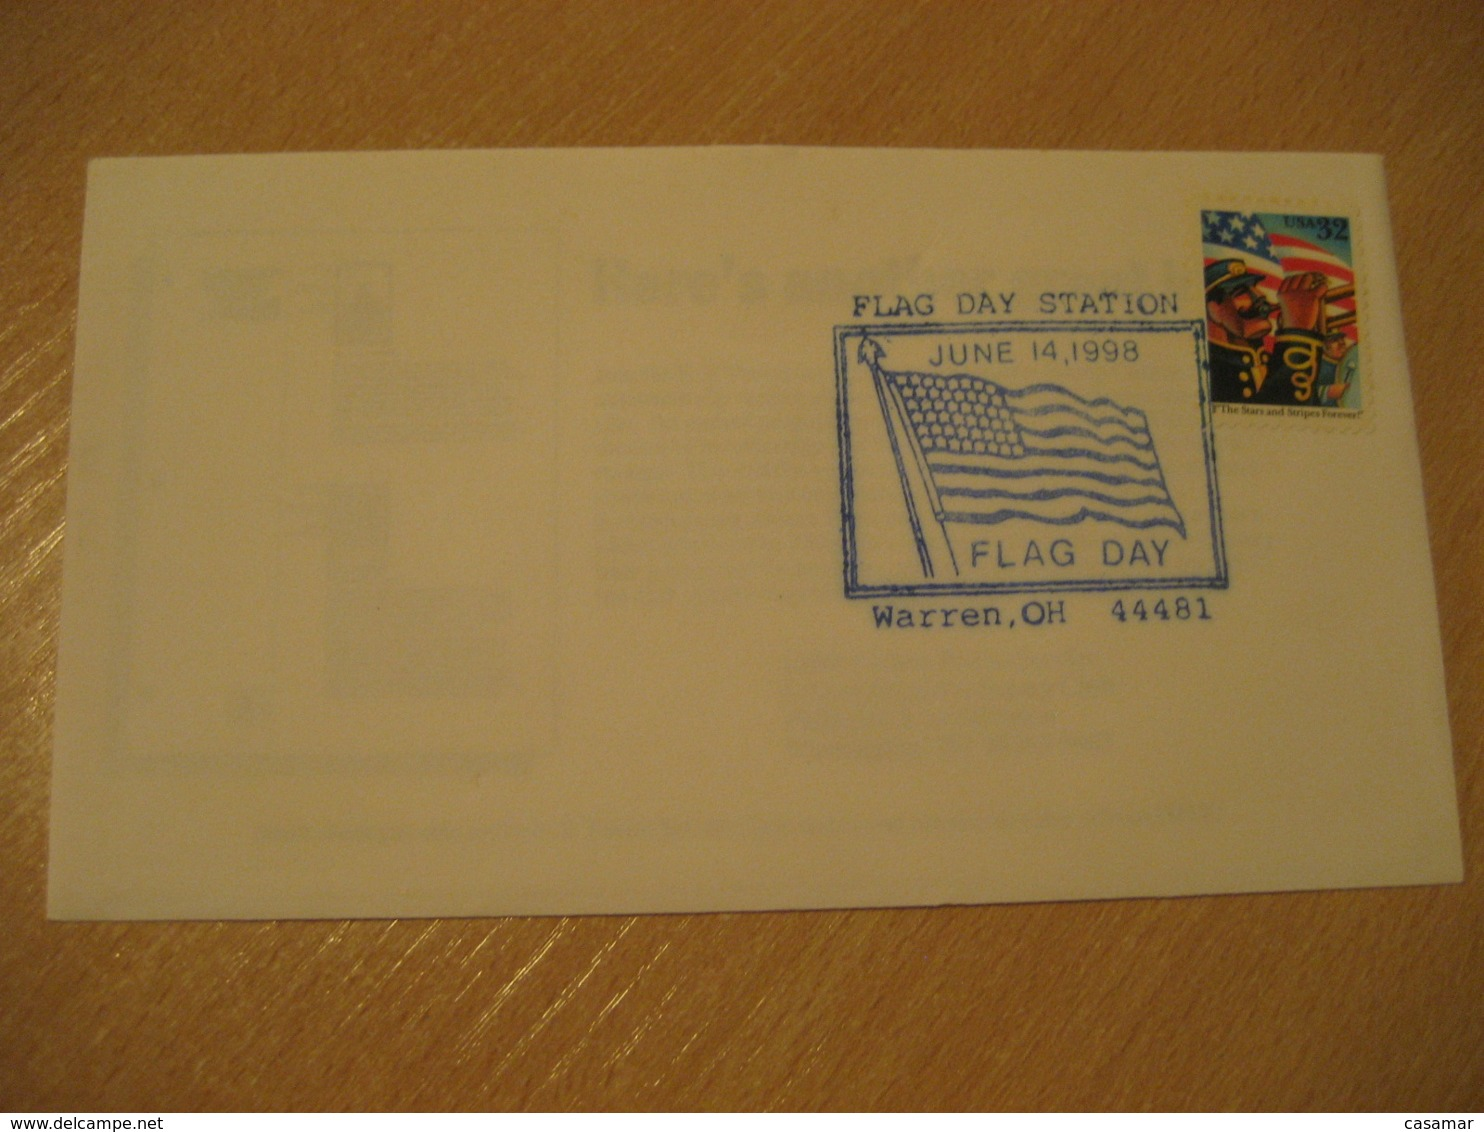 WARREN 1998 Day Flag Flags Cancel Cover USA - Briefe